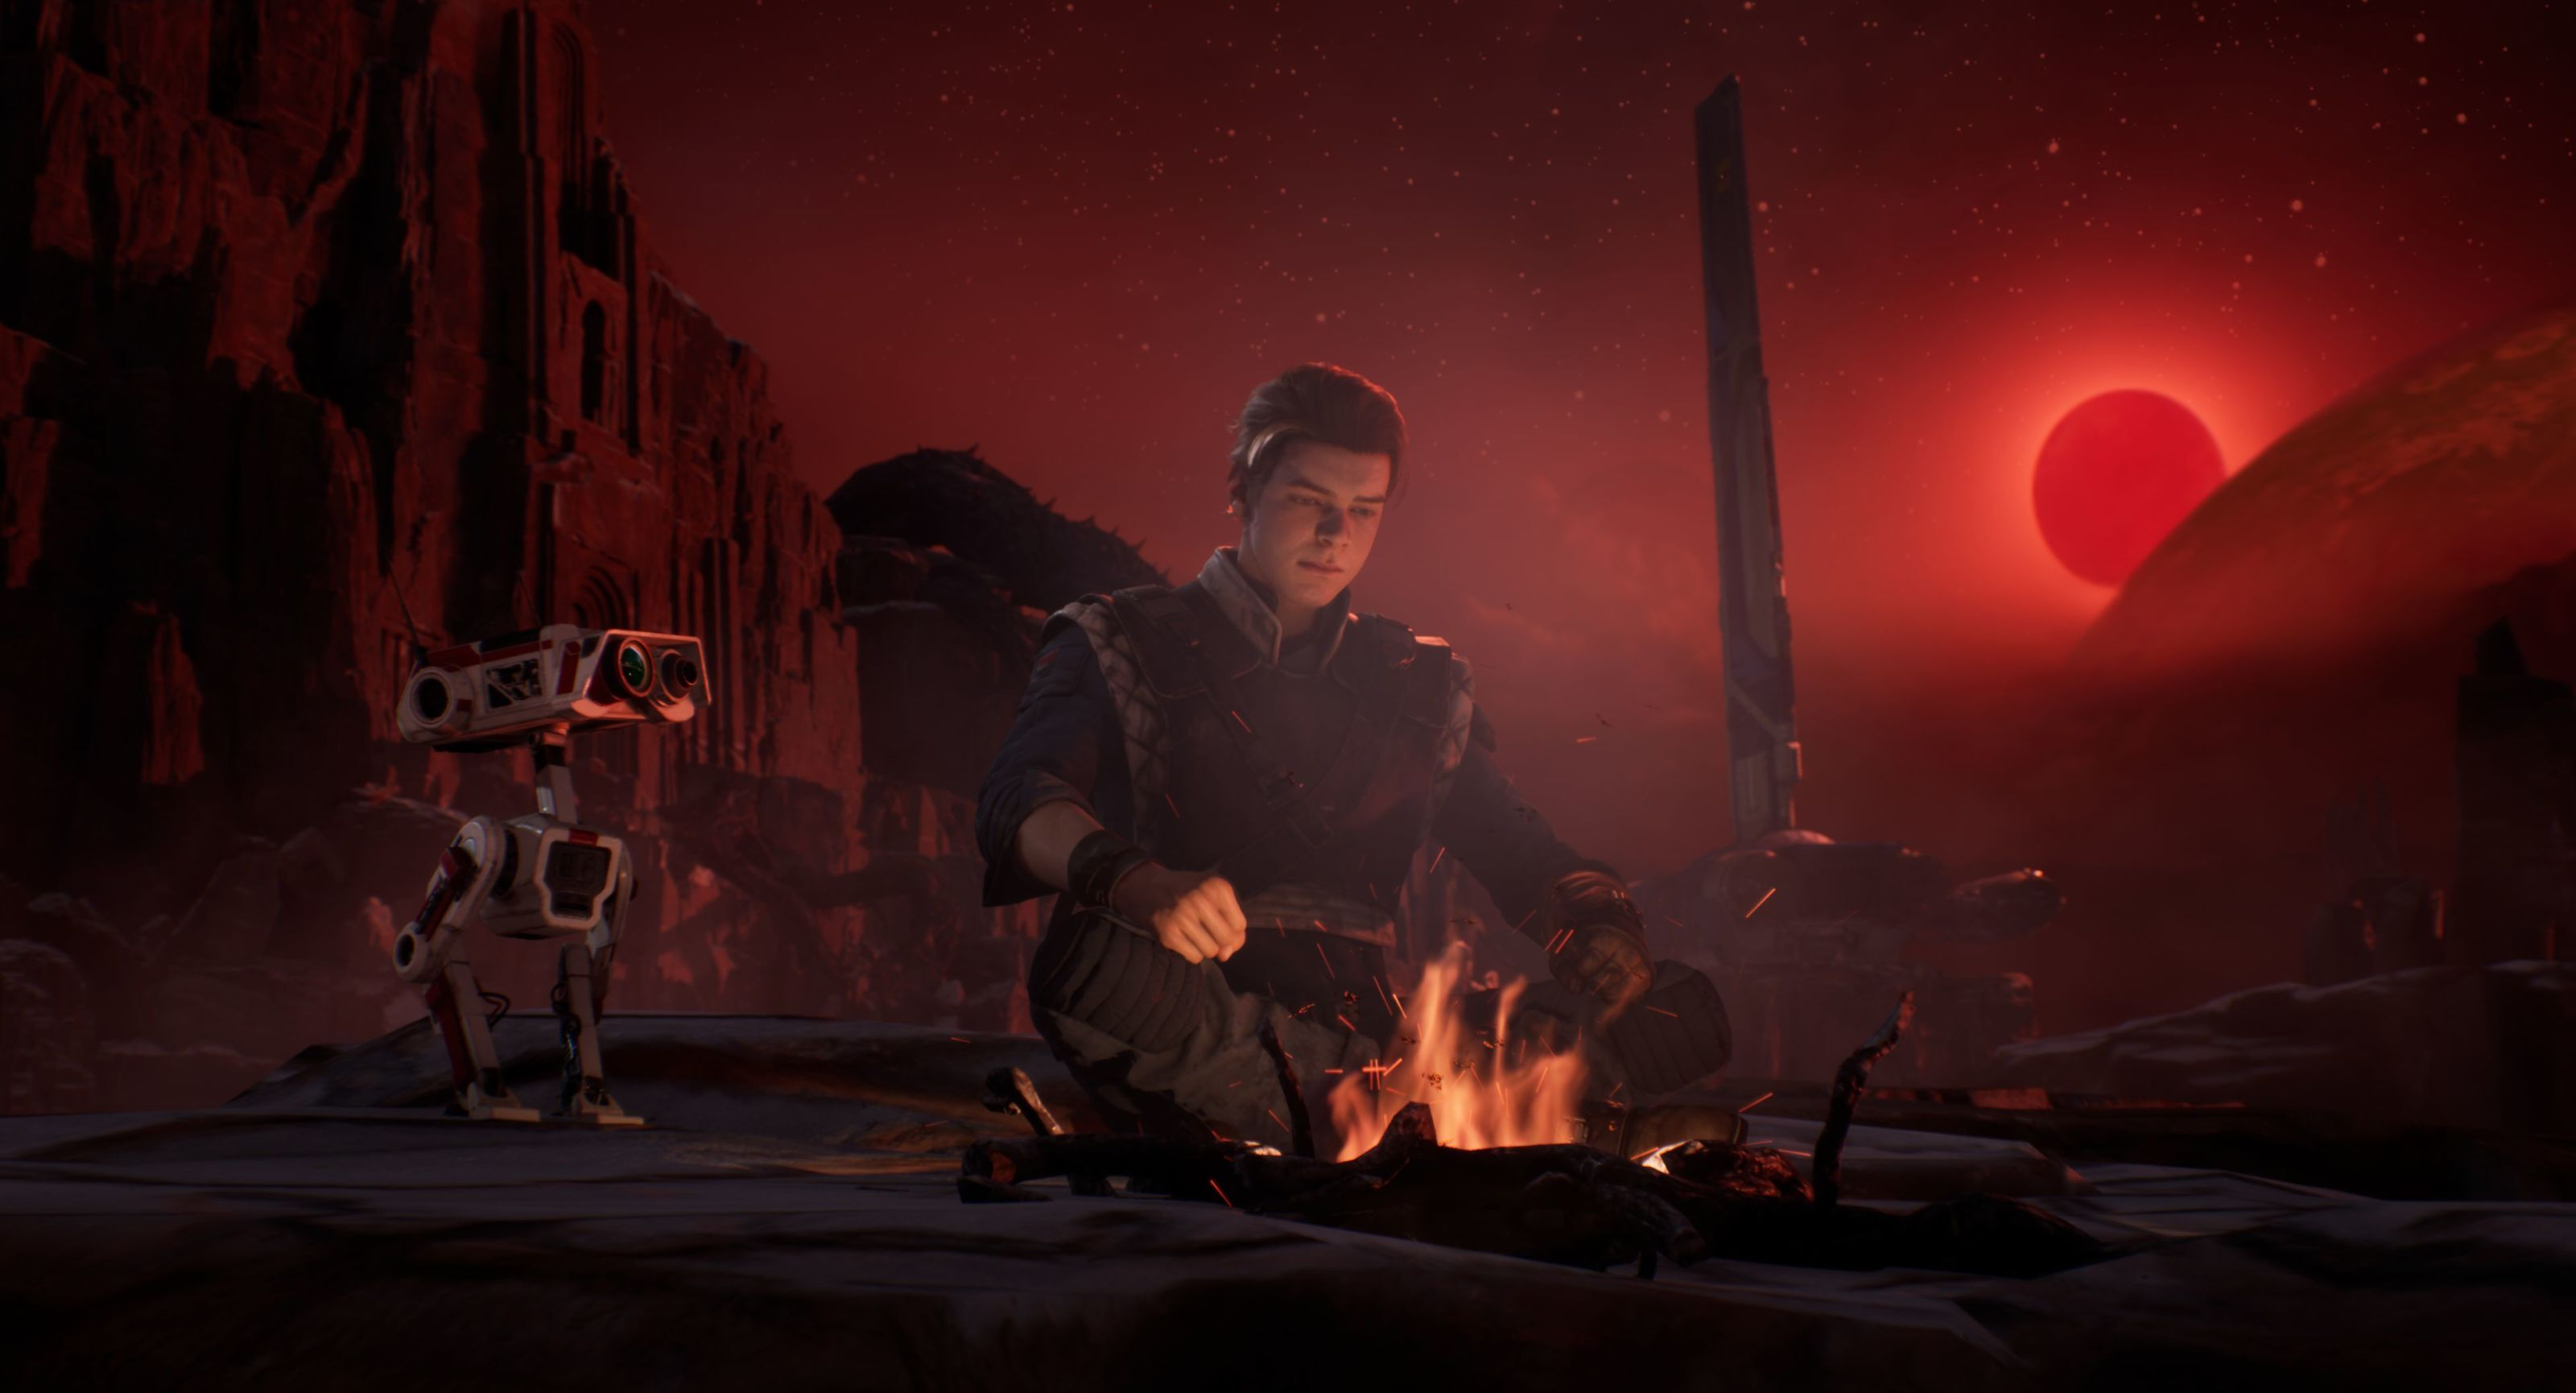 'Star Wars Jedi: Fallen Order' was inspired by Peanuts characters